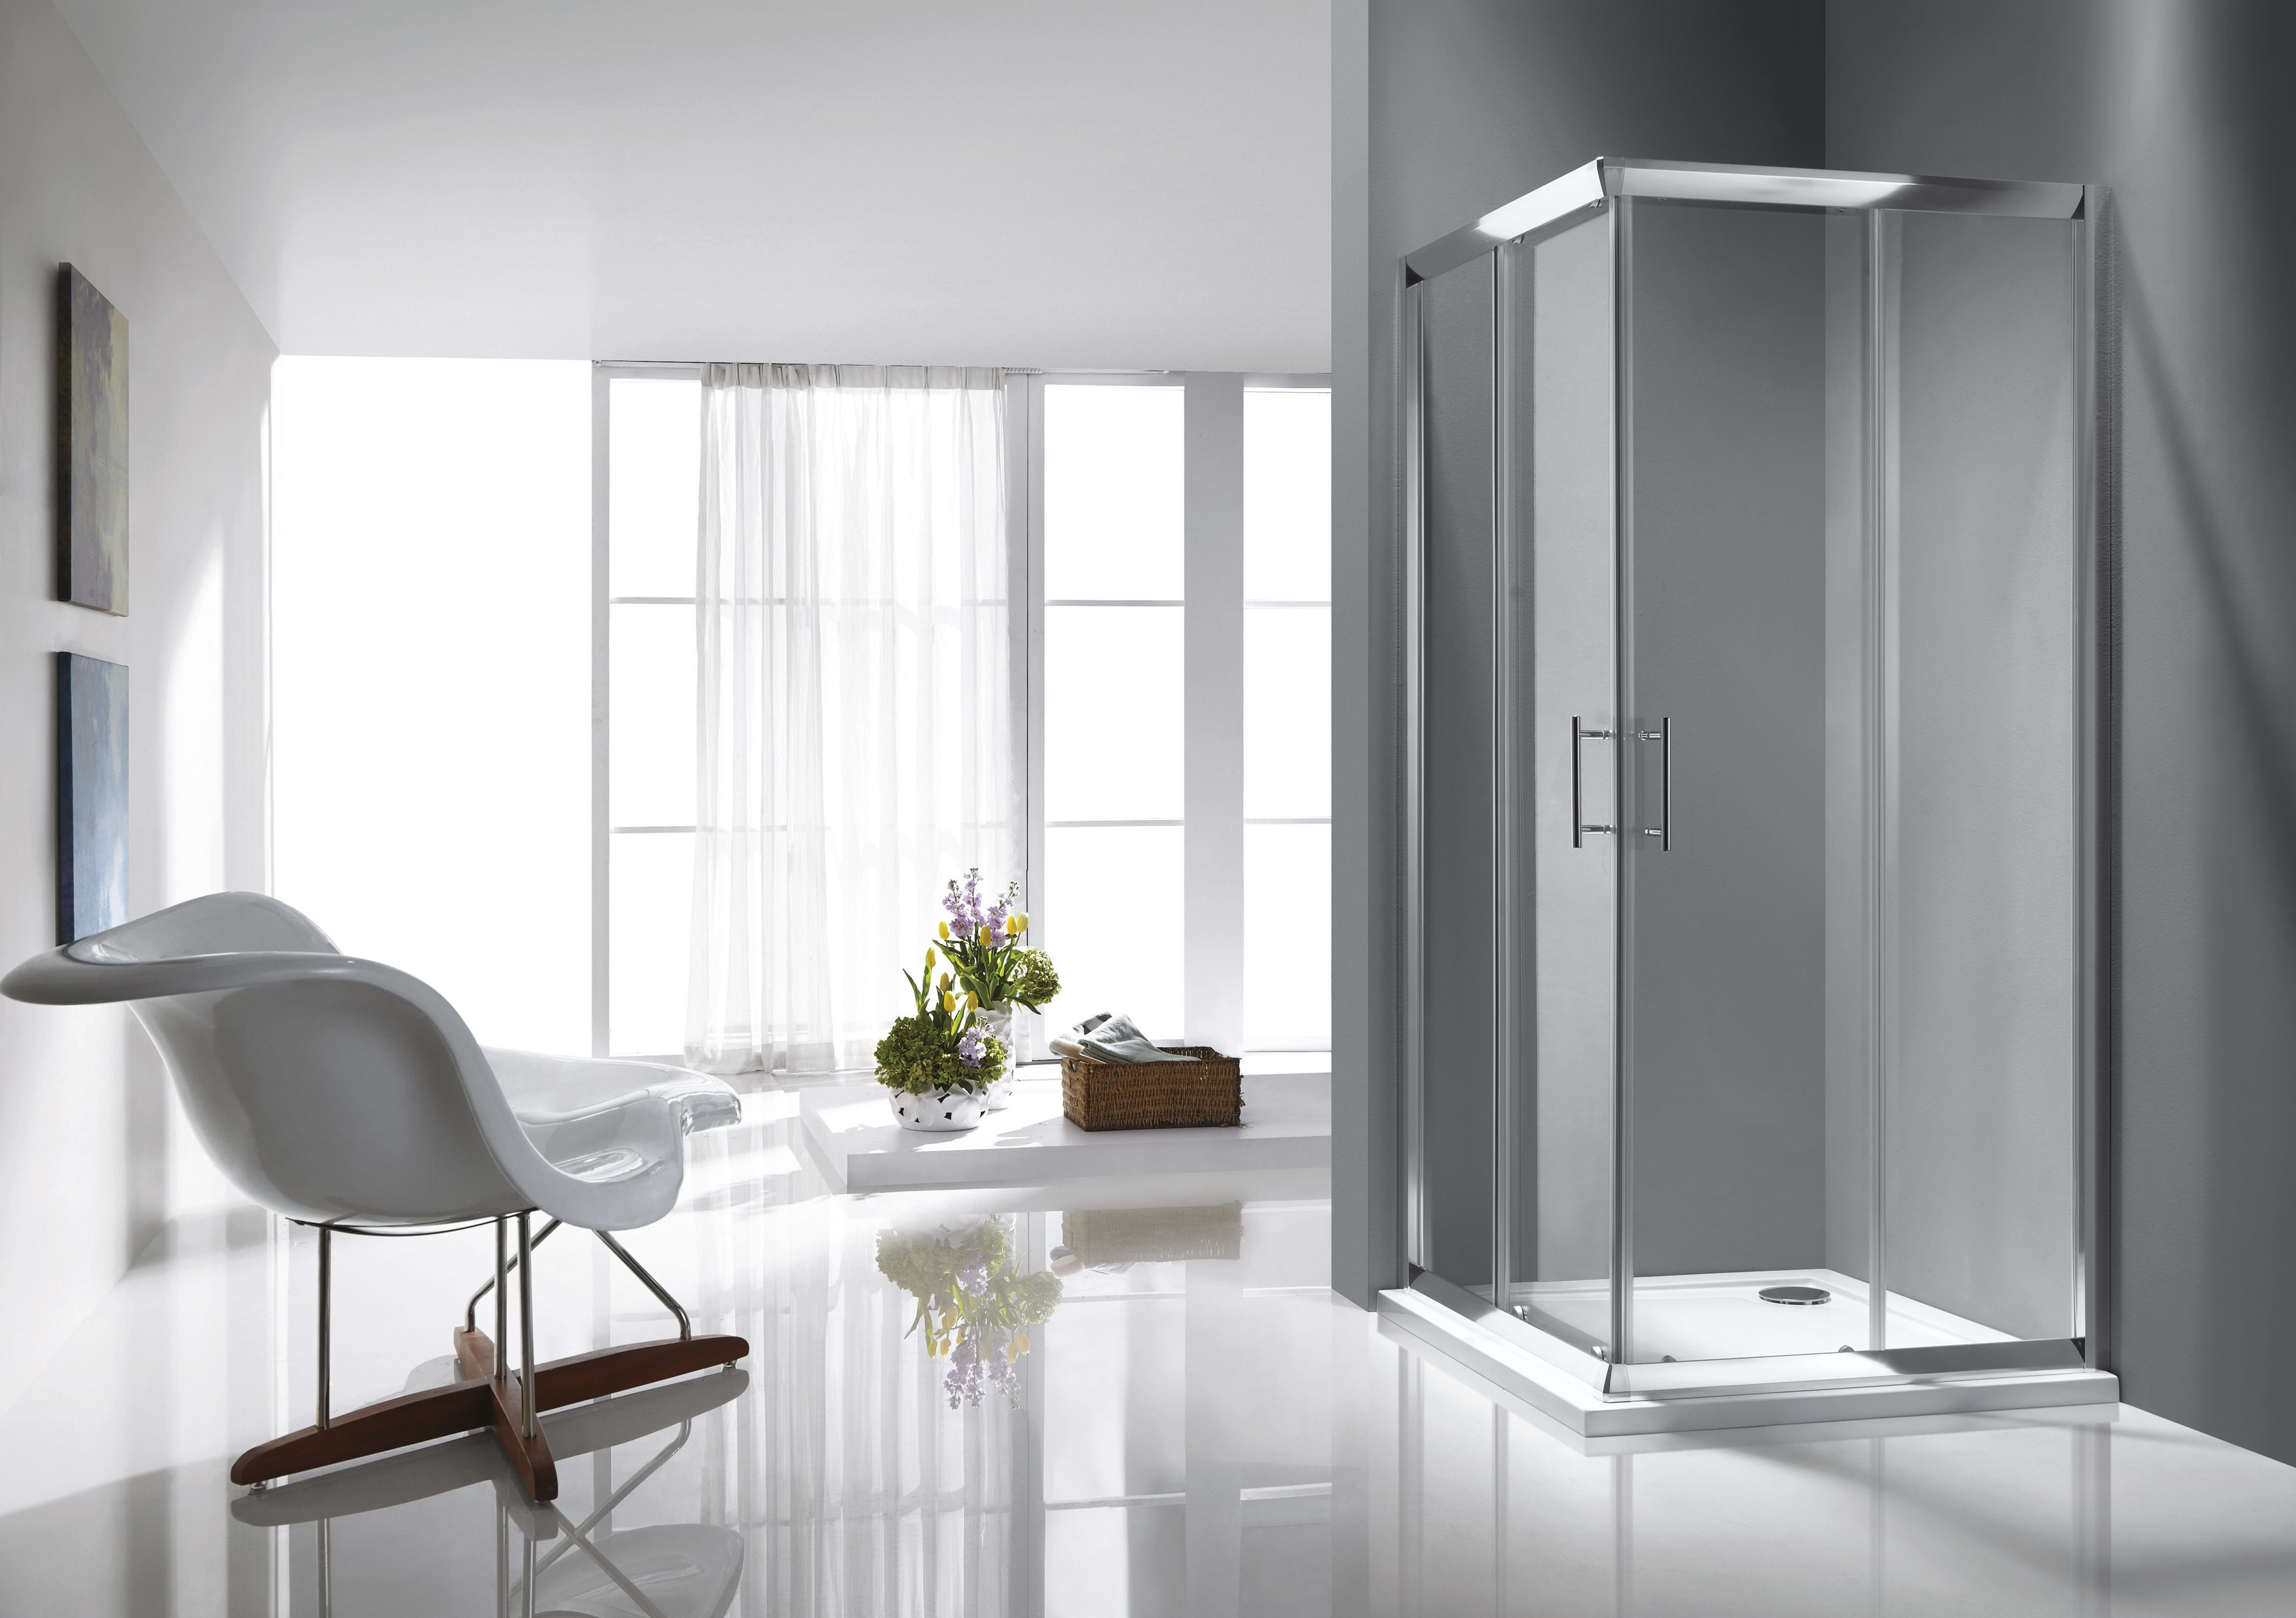 Rosery Shower Doors With Easy Clean Toughened Glass Exclusively Available From Tubs Tiles In Ireland Vienna Apartment Beautiful Bathrooms Interior